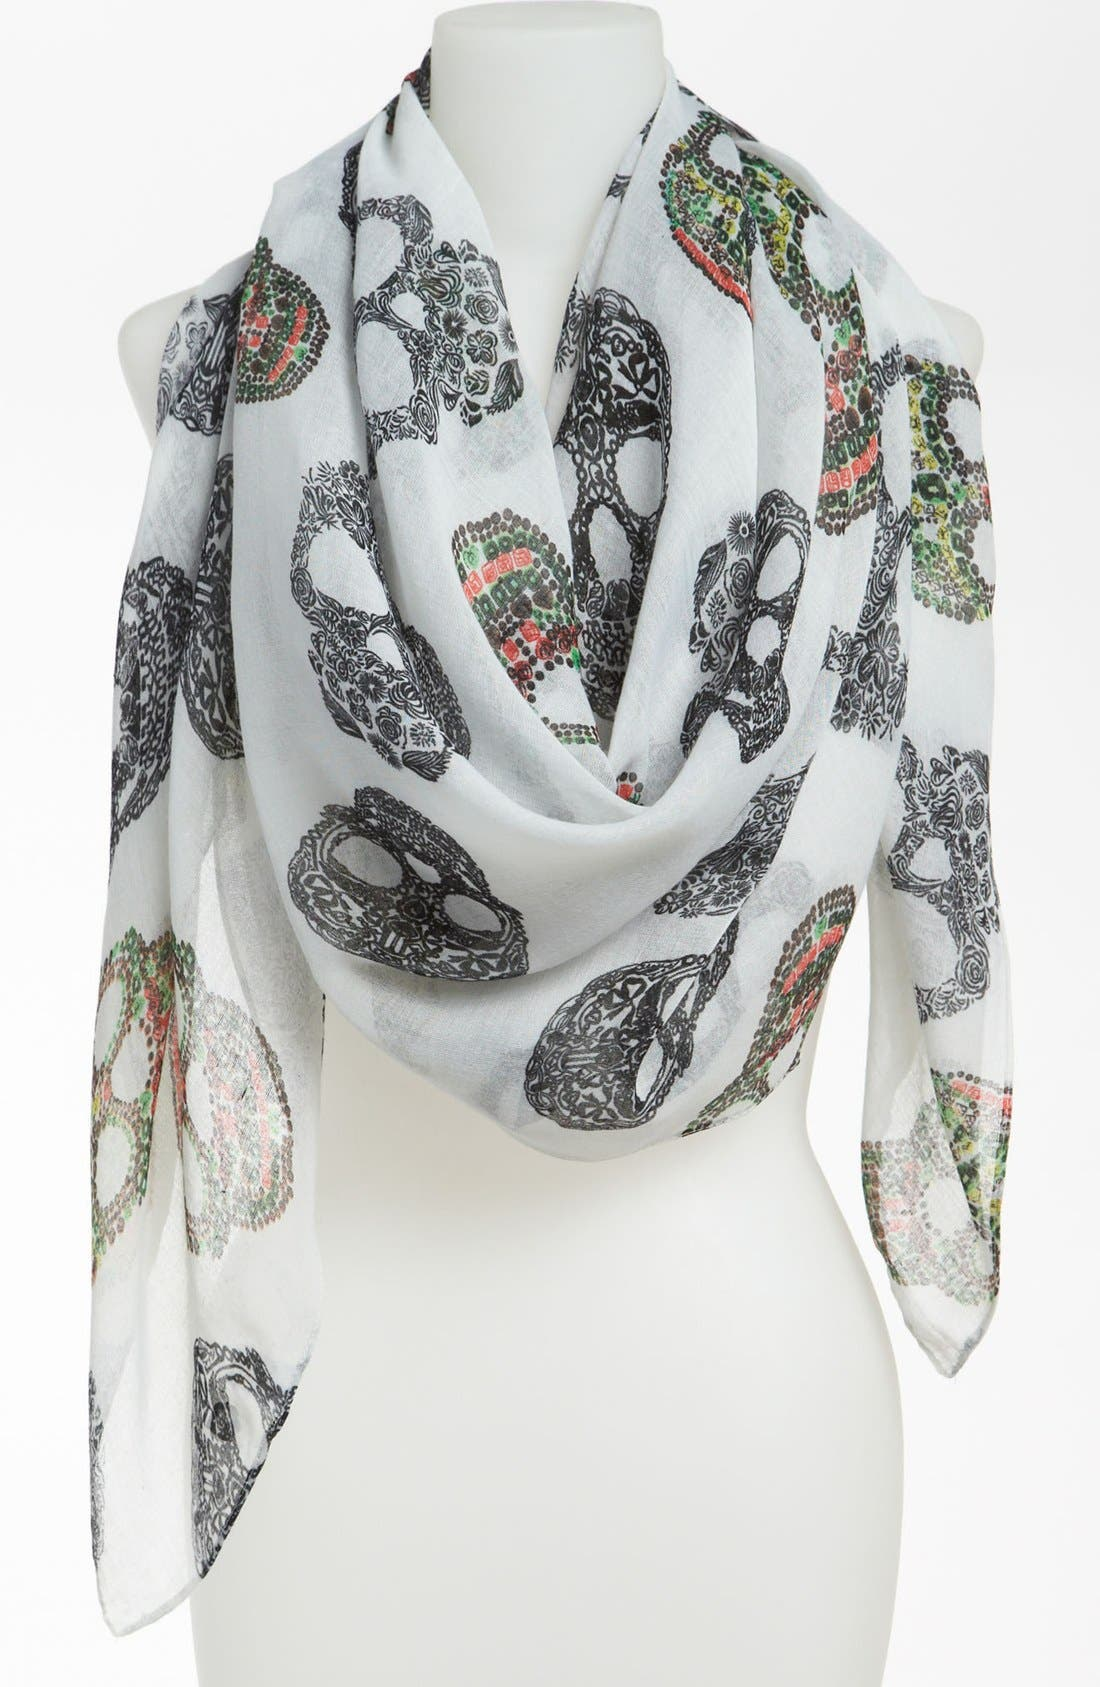 Alternate Image 1 Selected - BP. Sugar Skull Print Scarf